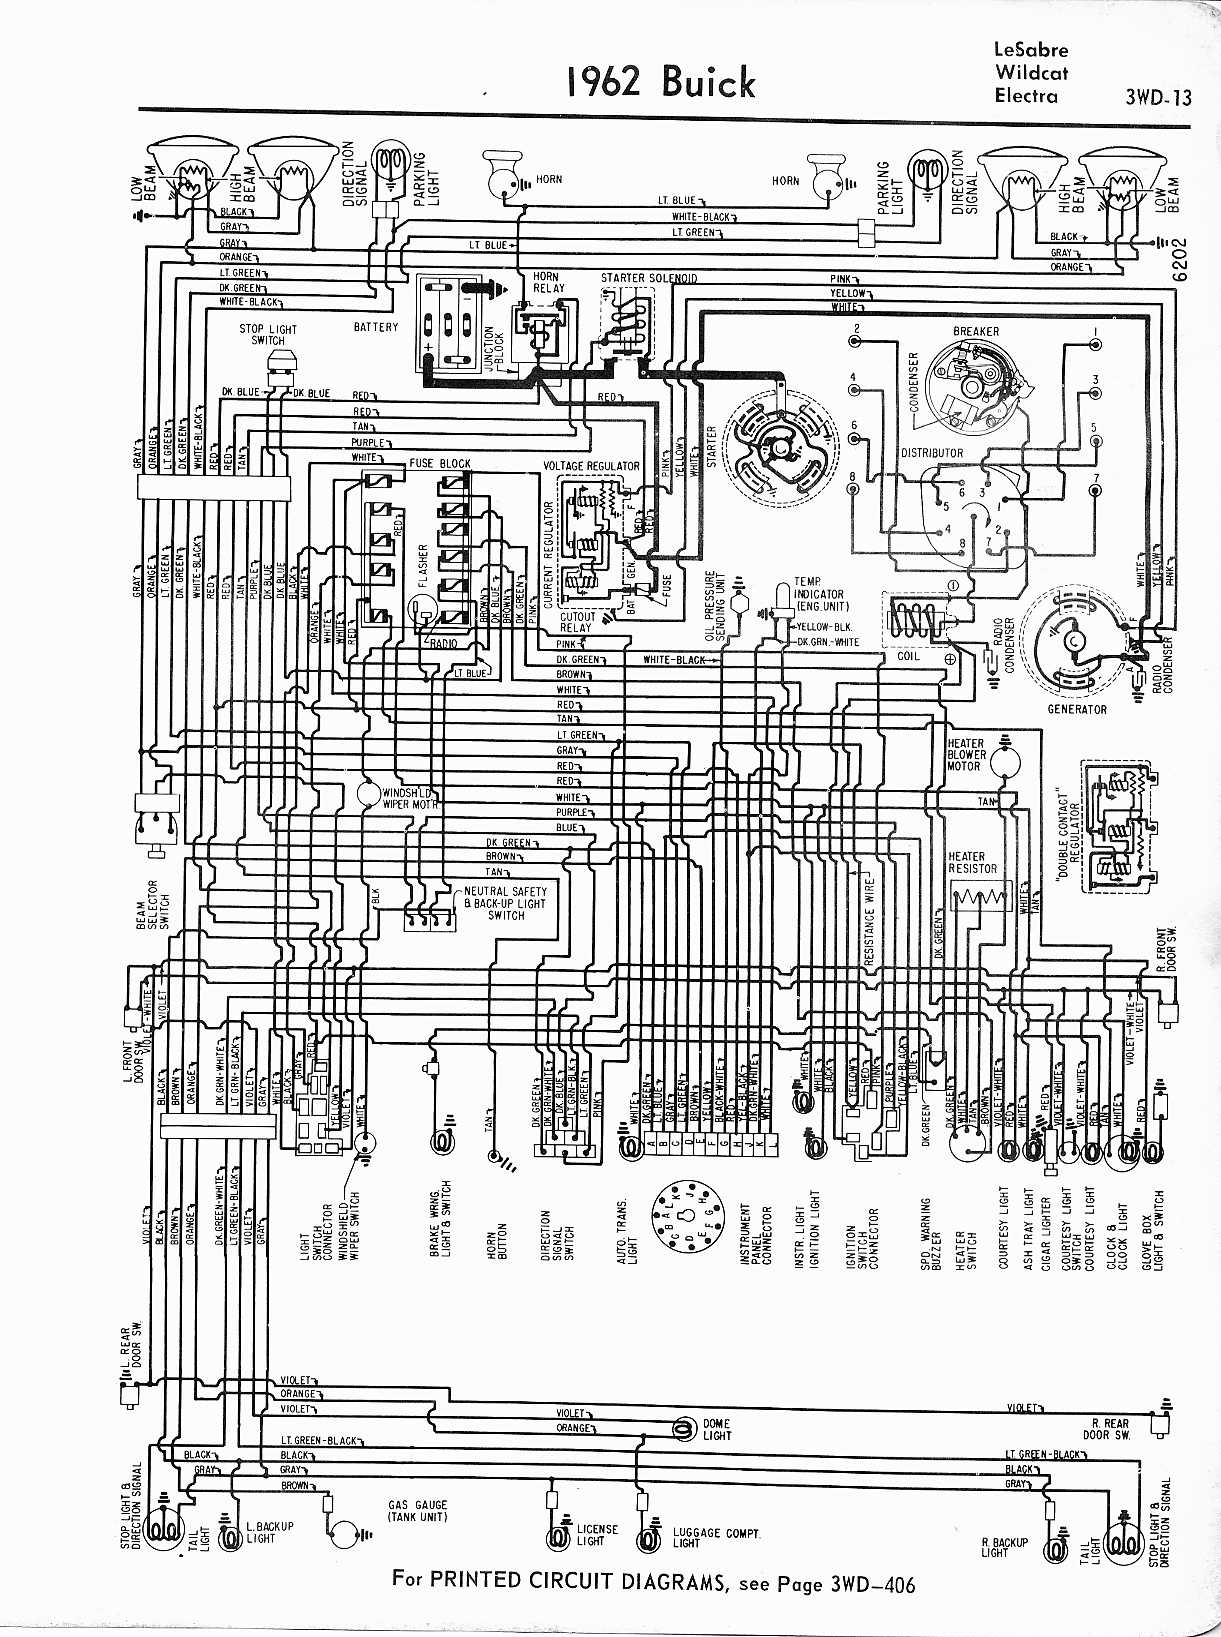 Buick Wiring Diagrams: 1957-1965 on lighting for bathrooms, lighting circuit diagram, lighting shabbat candles, lighting logo, lighting in kitchen, lighting symbols, air conditioning diagrams, lighting relay diagrams, lighting control diagrams, electrical diagrams, lighting in bedroom, lighting switch diagrams, lighting control panel,